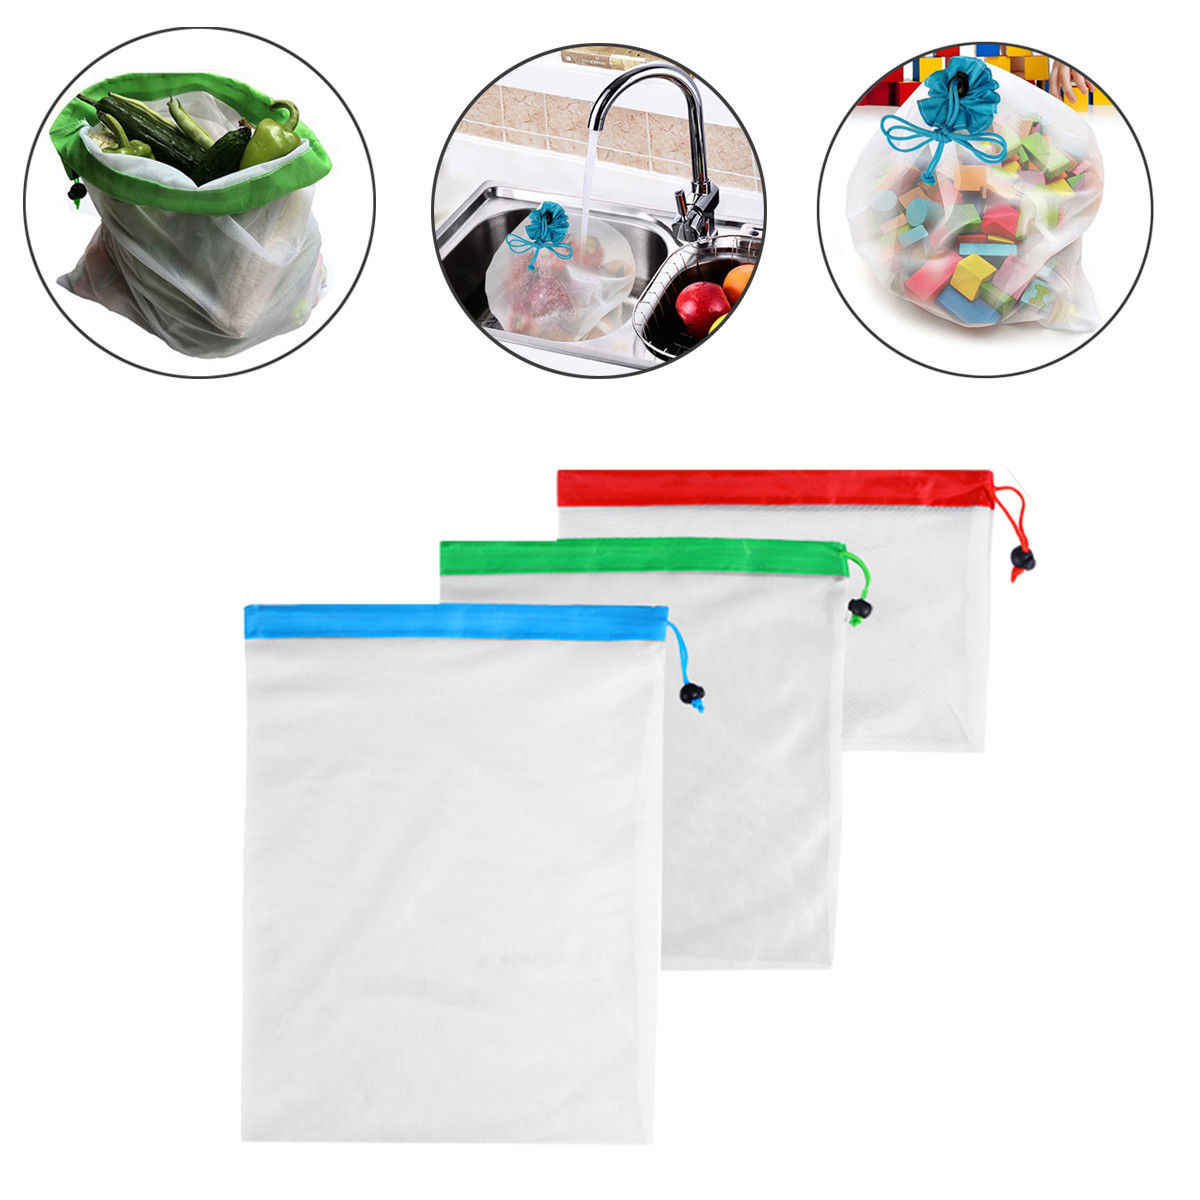 1pcs Thick Reusable Mesh Bag for Grocery Shopping Fruit Vegetable Toys Storage Bags Clear Poly Bag Food Storage Bag 3 Sizes